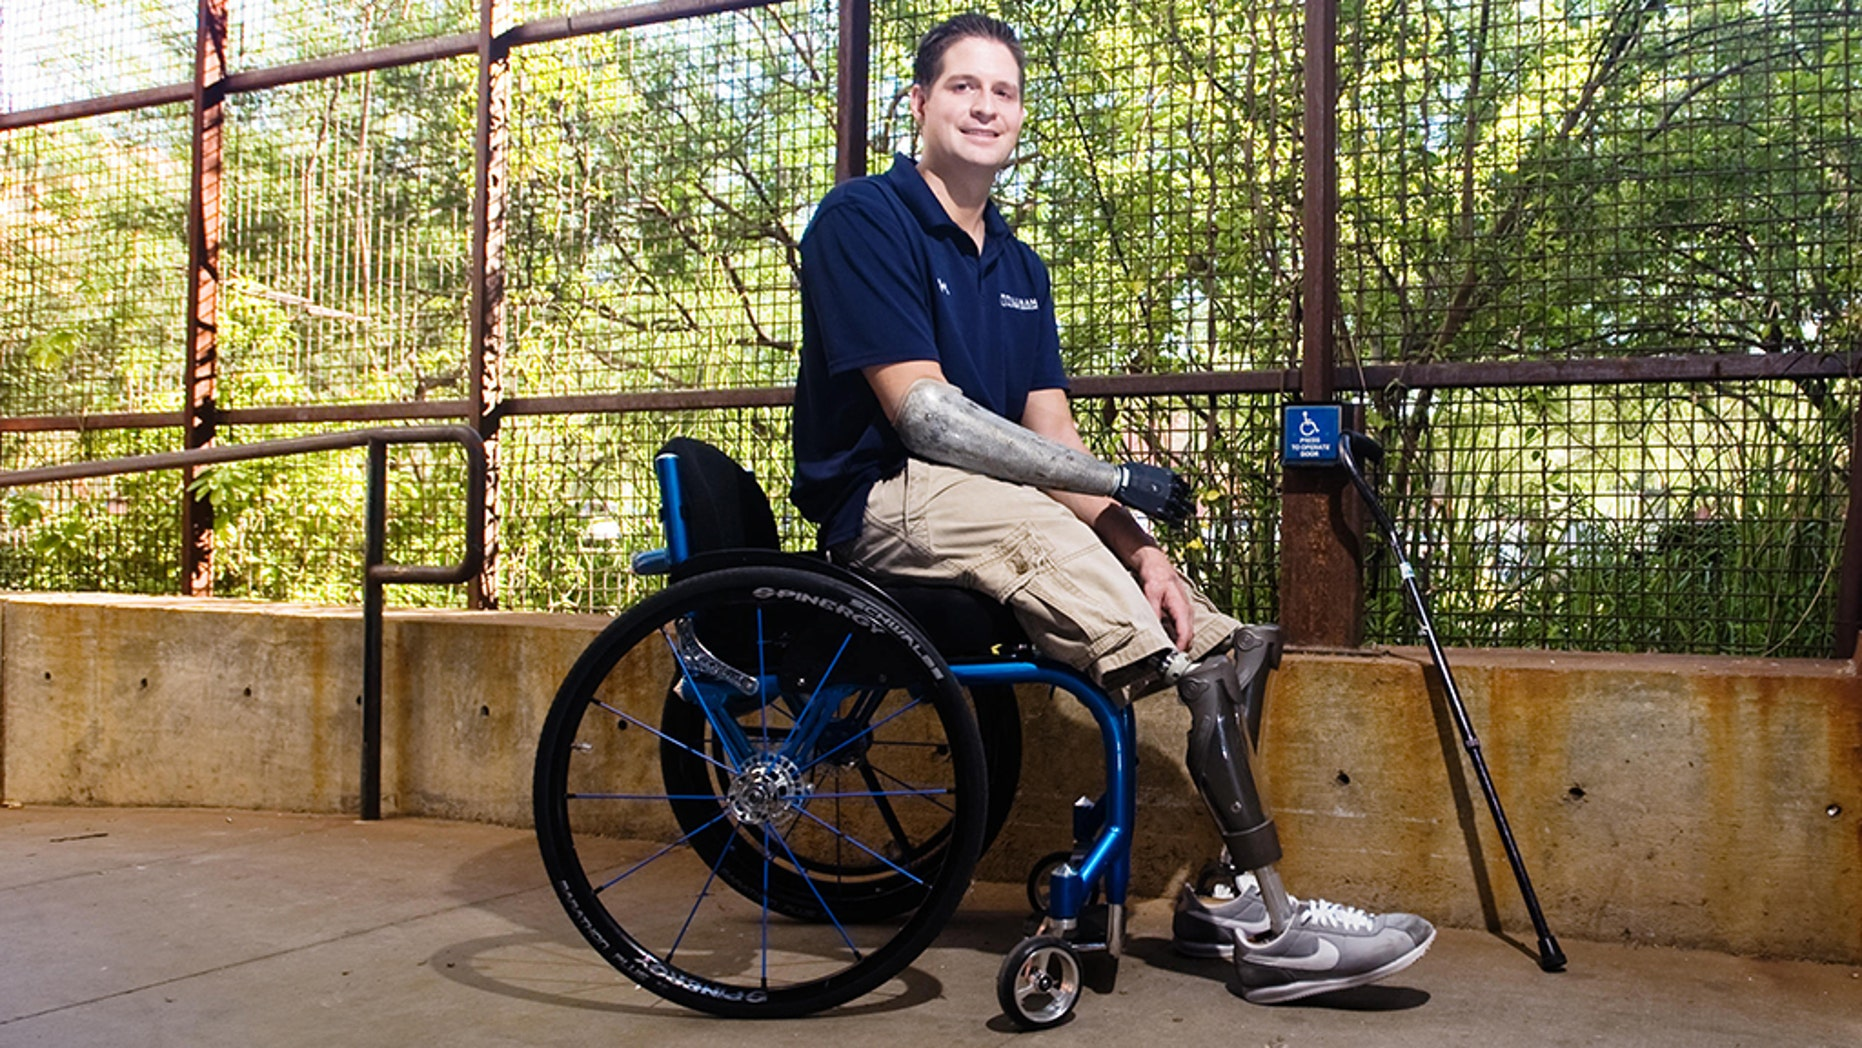 From GoFundMe to private project: Disabled vet says his border wall